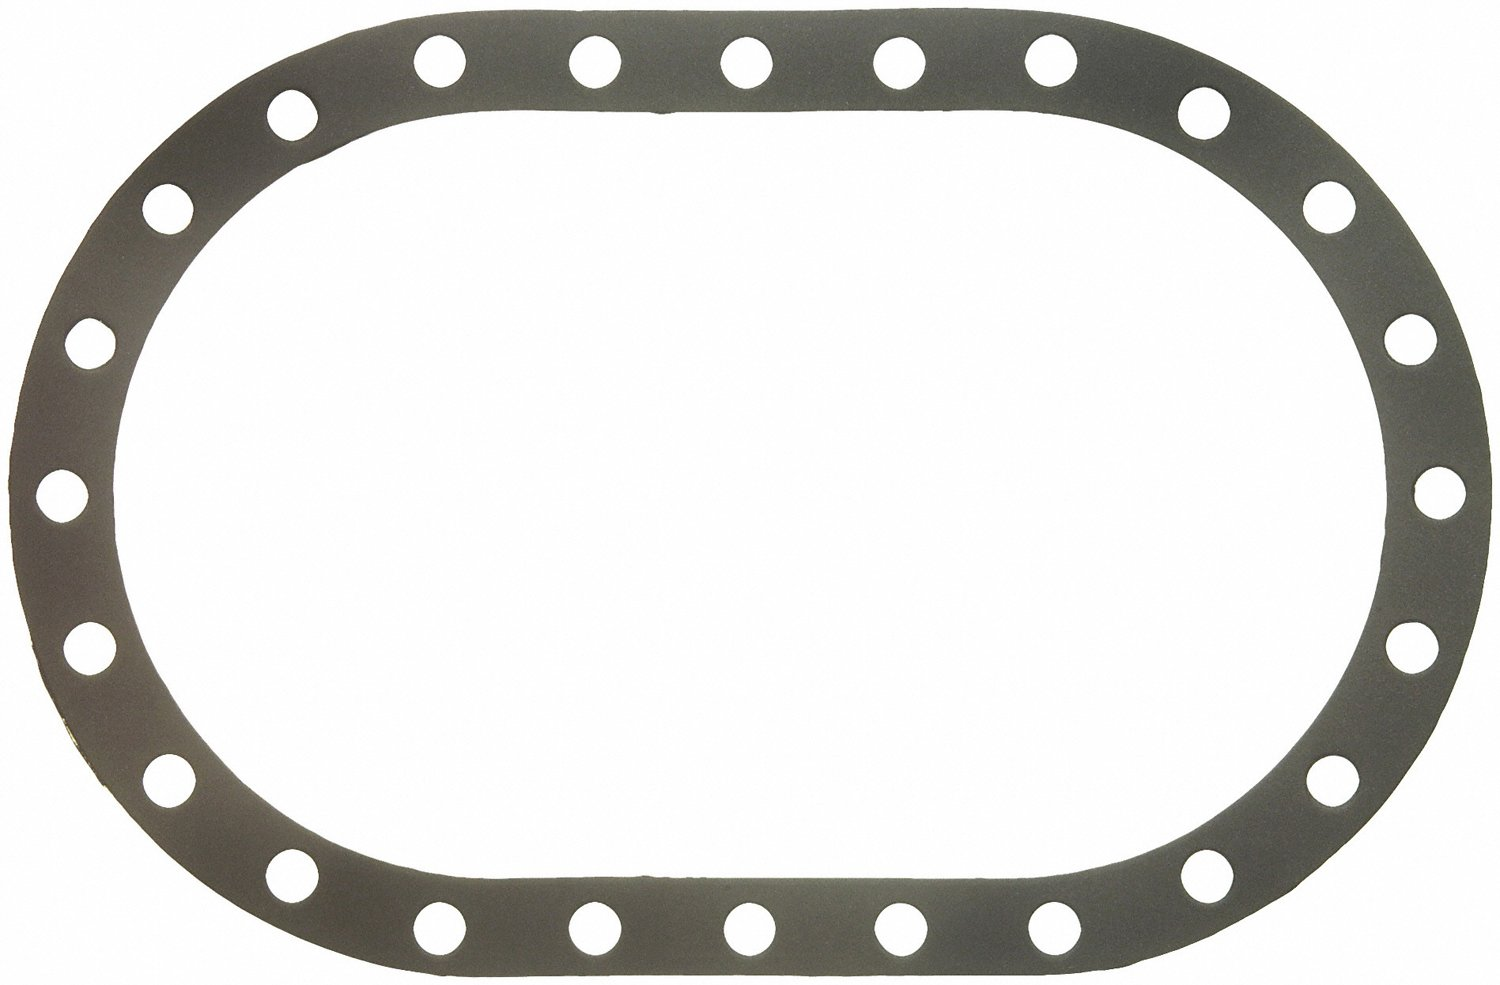 Fel-Pro 2400 Performance Fuel Cell Gasket